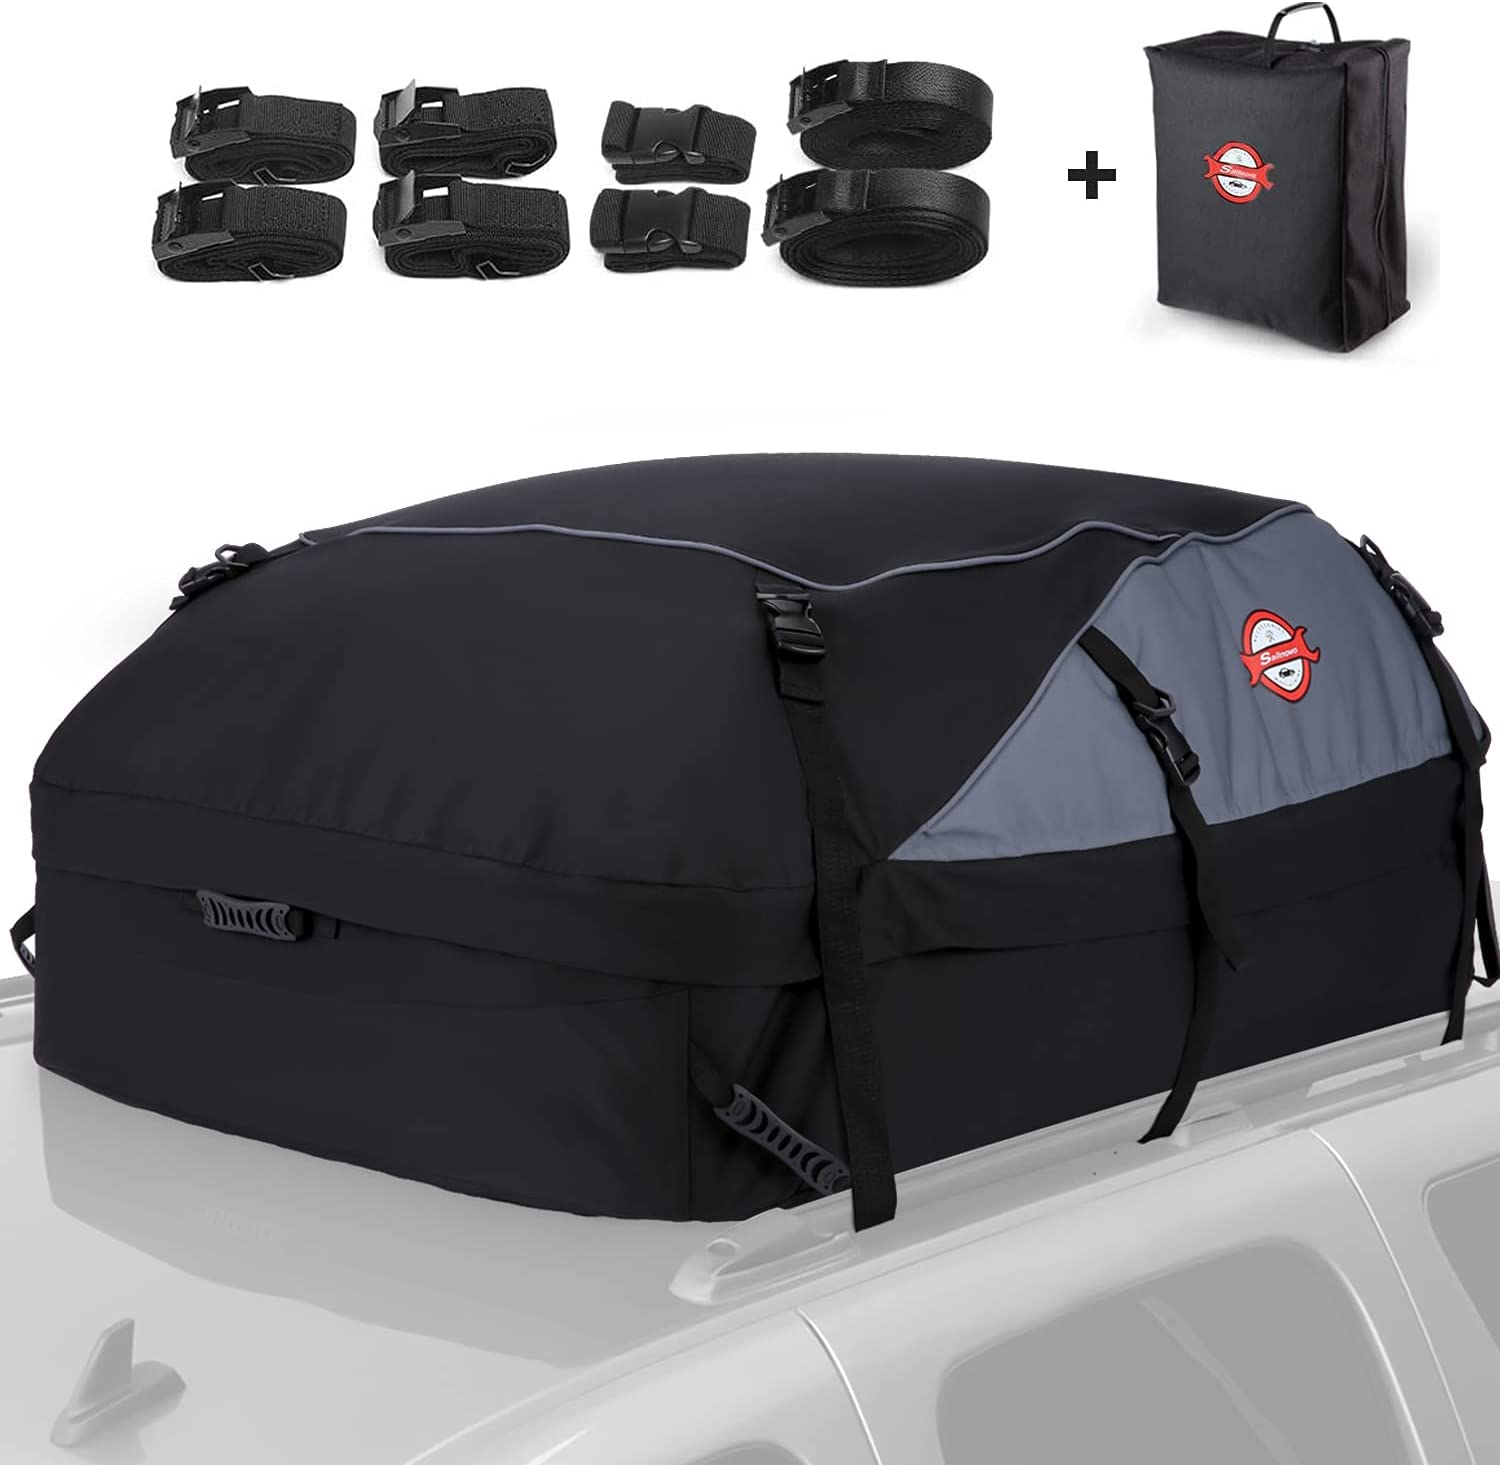 Housewives Max 83% OFF 20 Cubic ft Car Roof Choice Ro Storage Cargo Bag Carrier Top